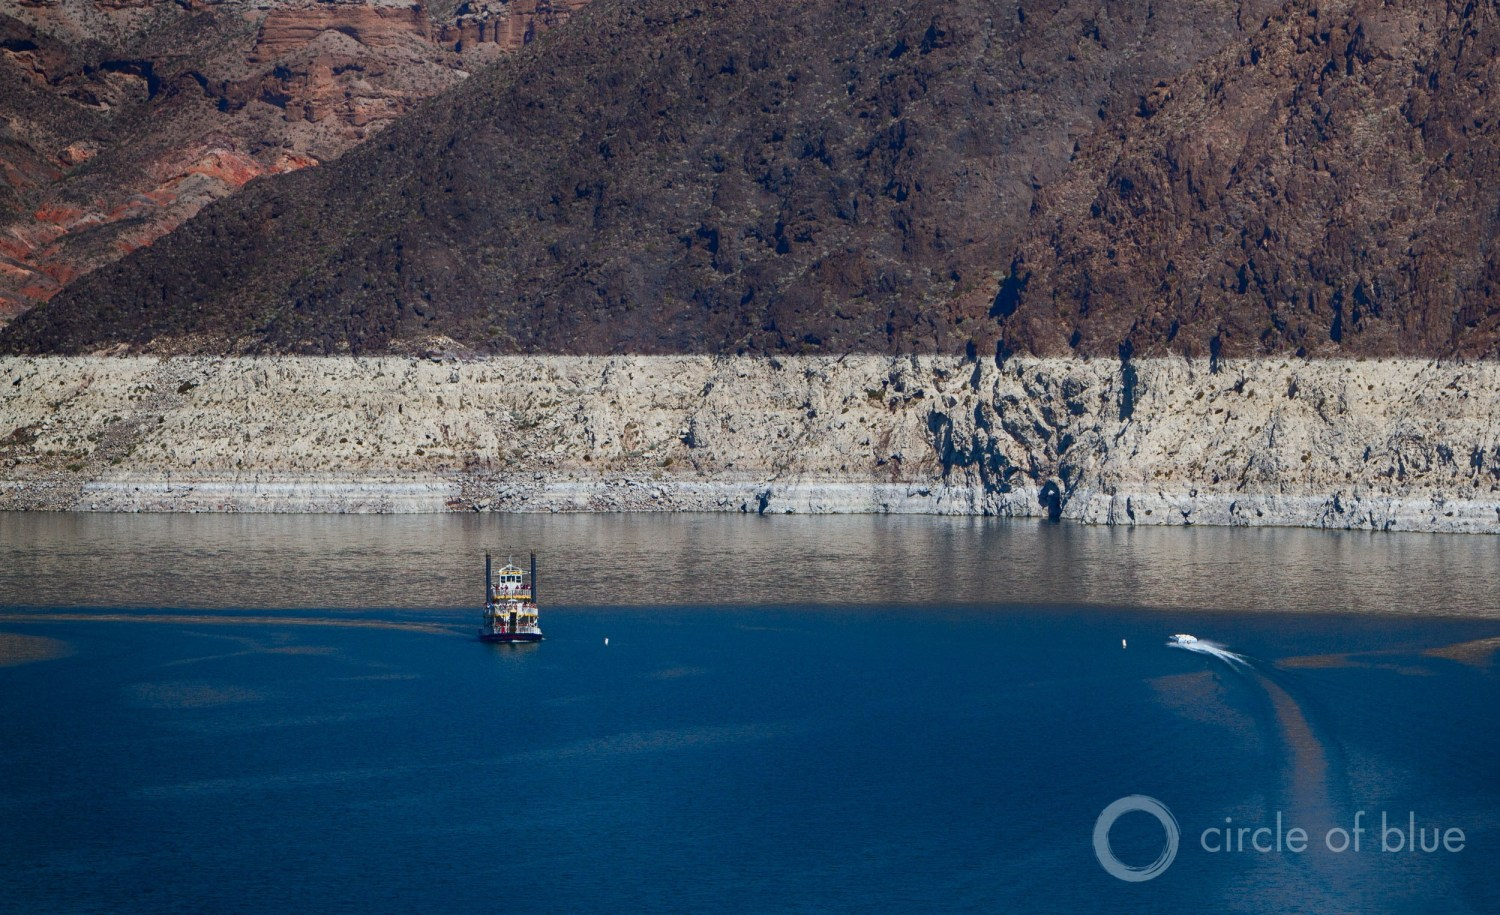 Lake Mead set a new record low on May 18, but the states that draw water from the big reservoir will not face mandatory restrictions in 2017. Water levels are not projected to drop low enough to trigger a first-ever shortage. Photo © J. Carl Ganter / Circle of Blue